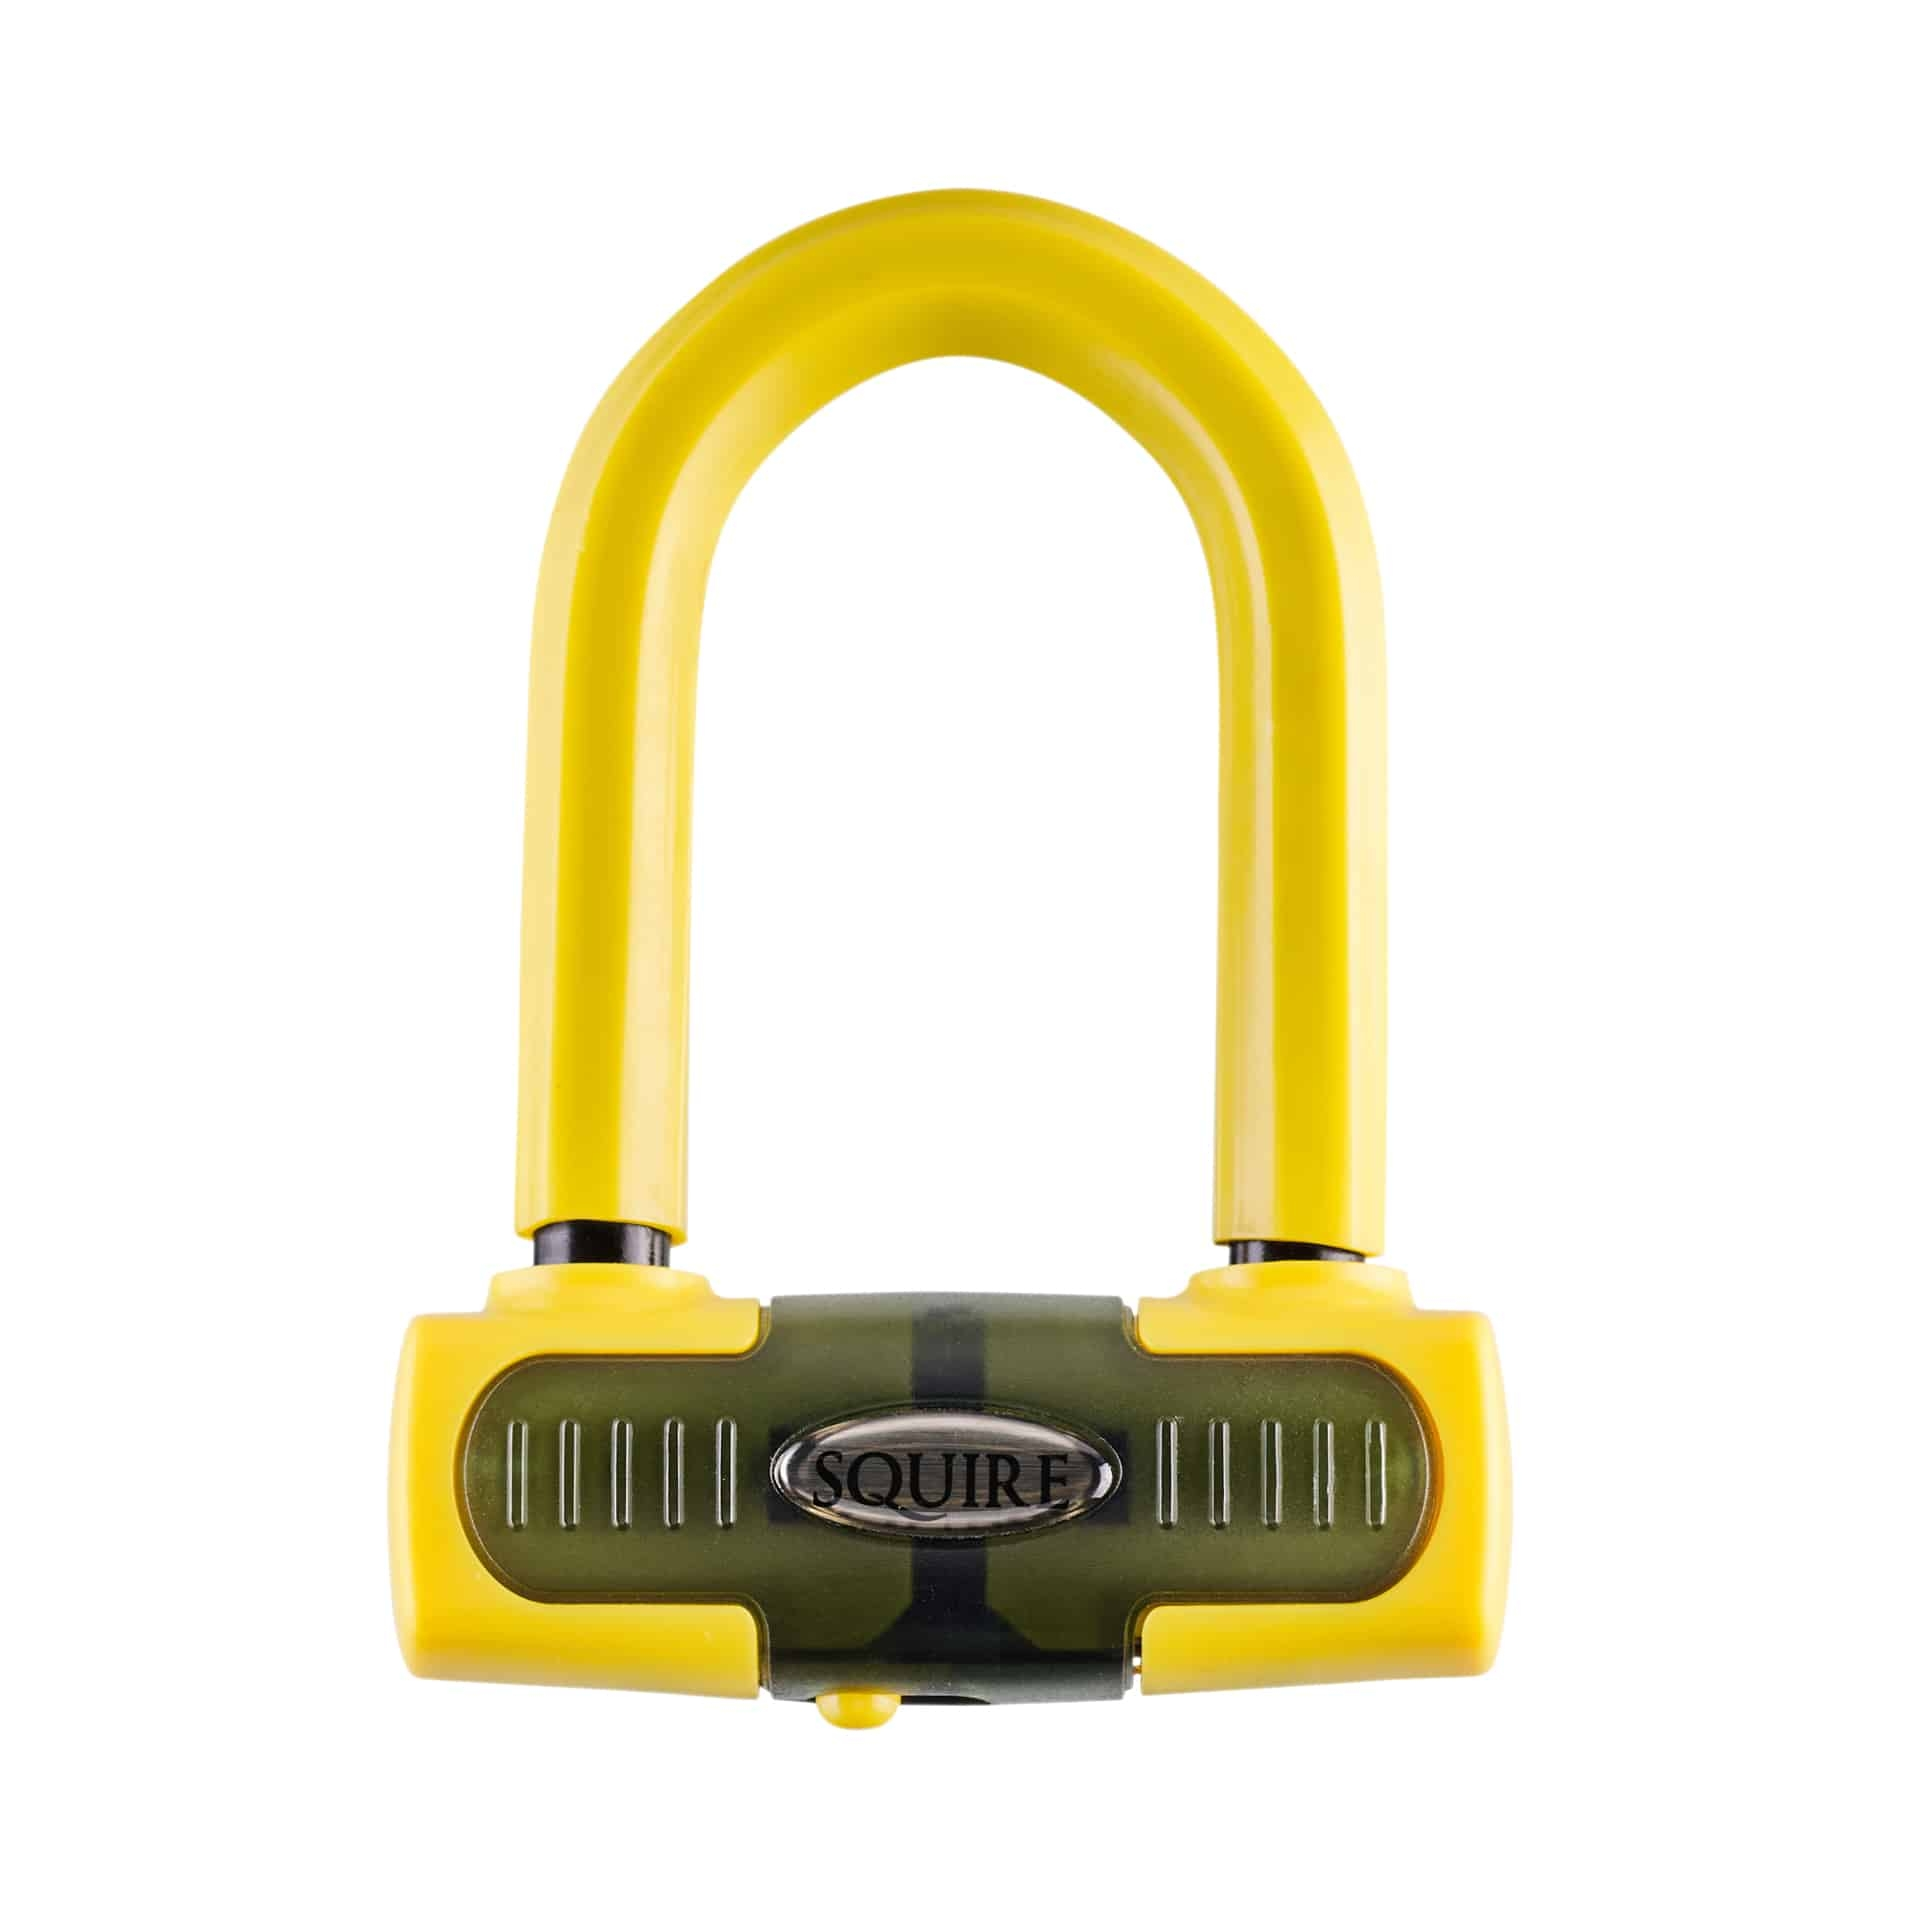 Squire Bicycle Lock EIGERMINI-YELLOW-A